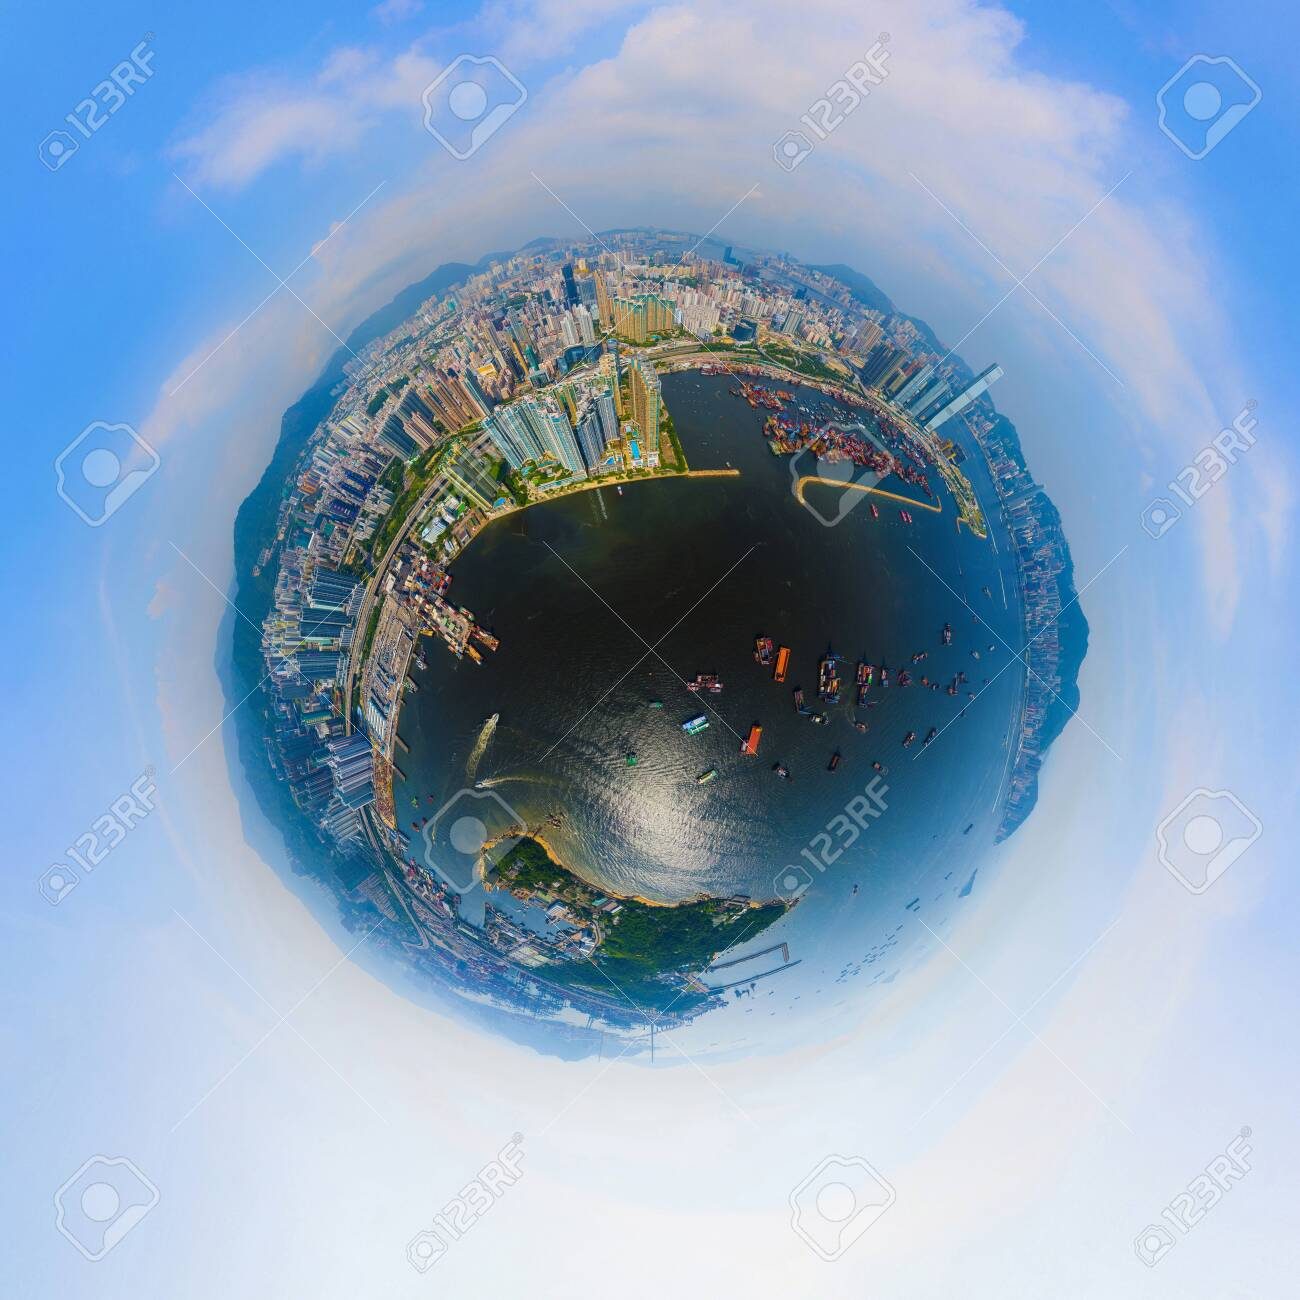 Little planet 360 degree sphere birds eye view. Panoramic view of aerial view of Hong Kong Downtown. Financial district and business centers in technology smart city. Skyscraper buildings at noon. - 130497411